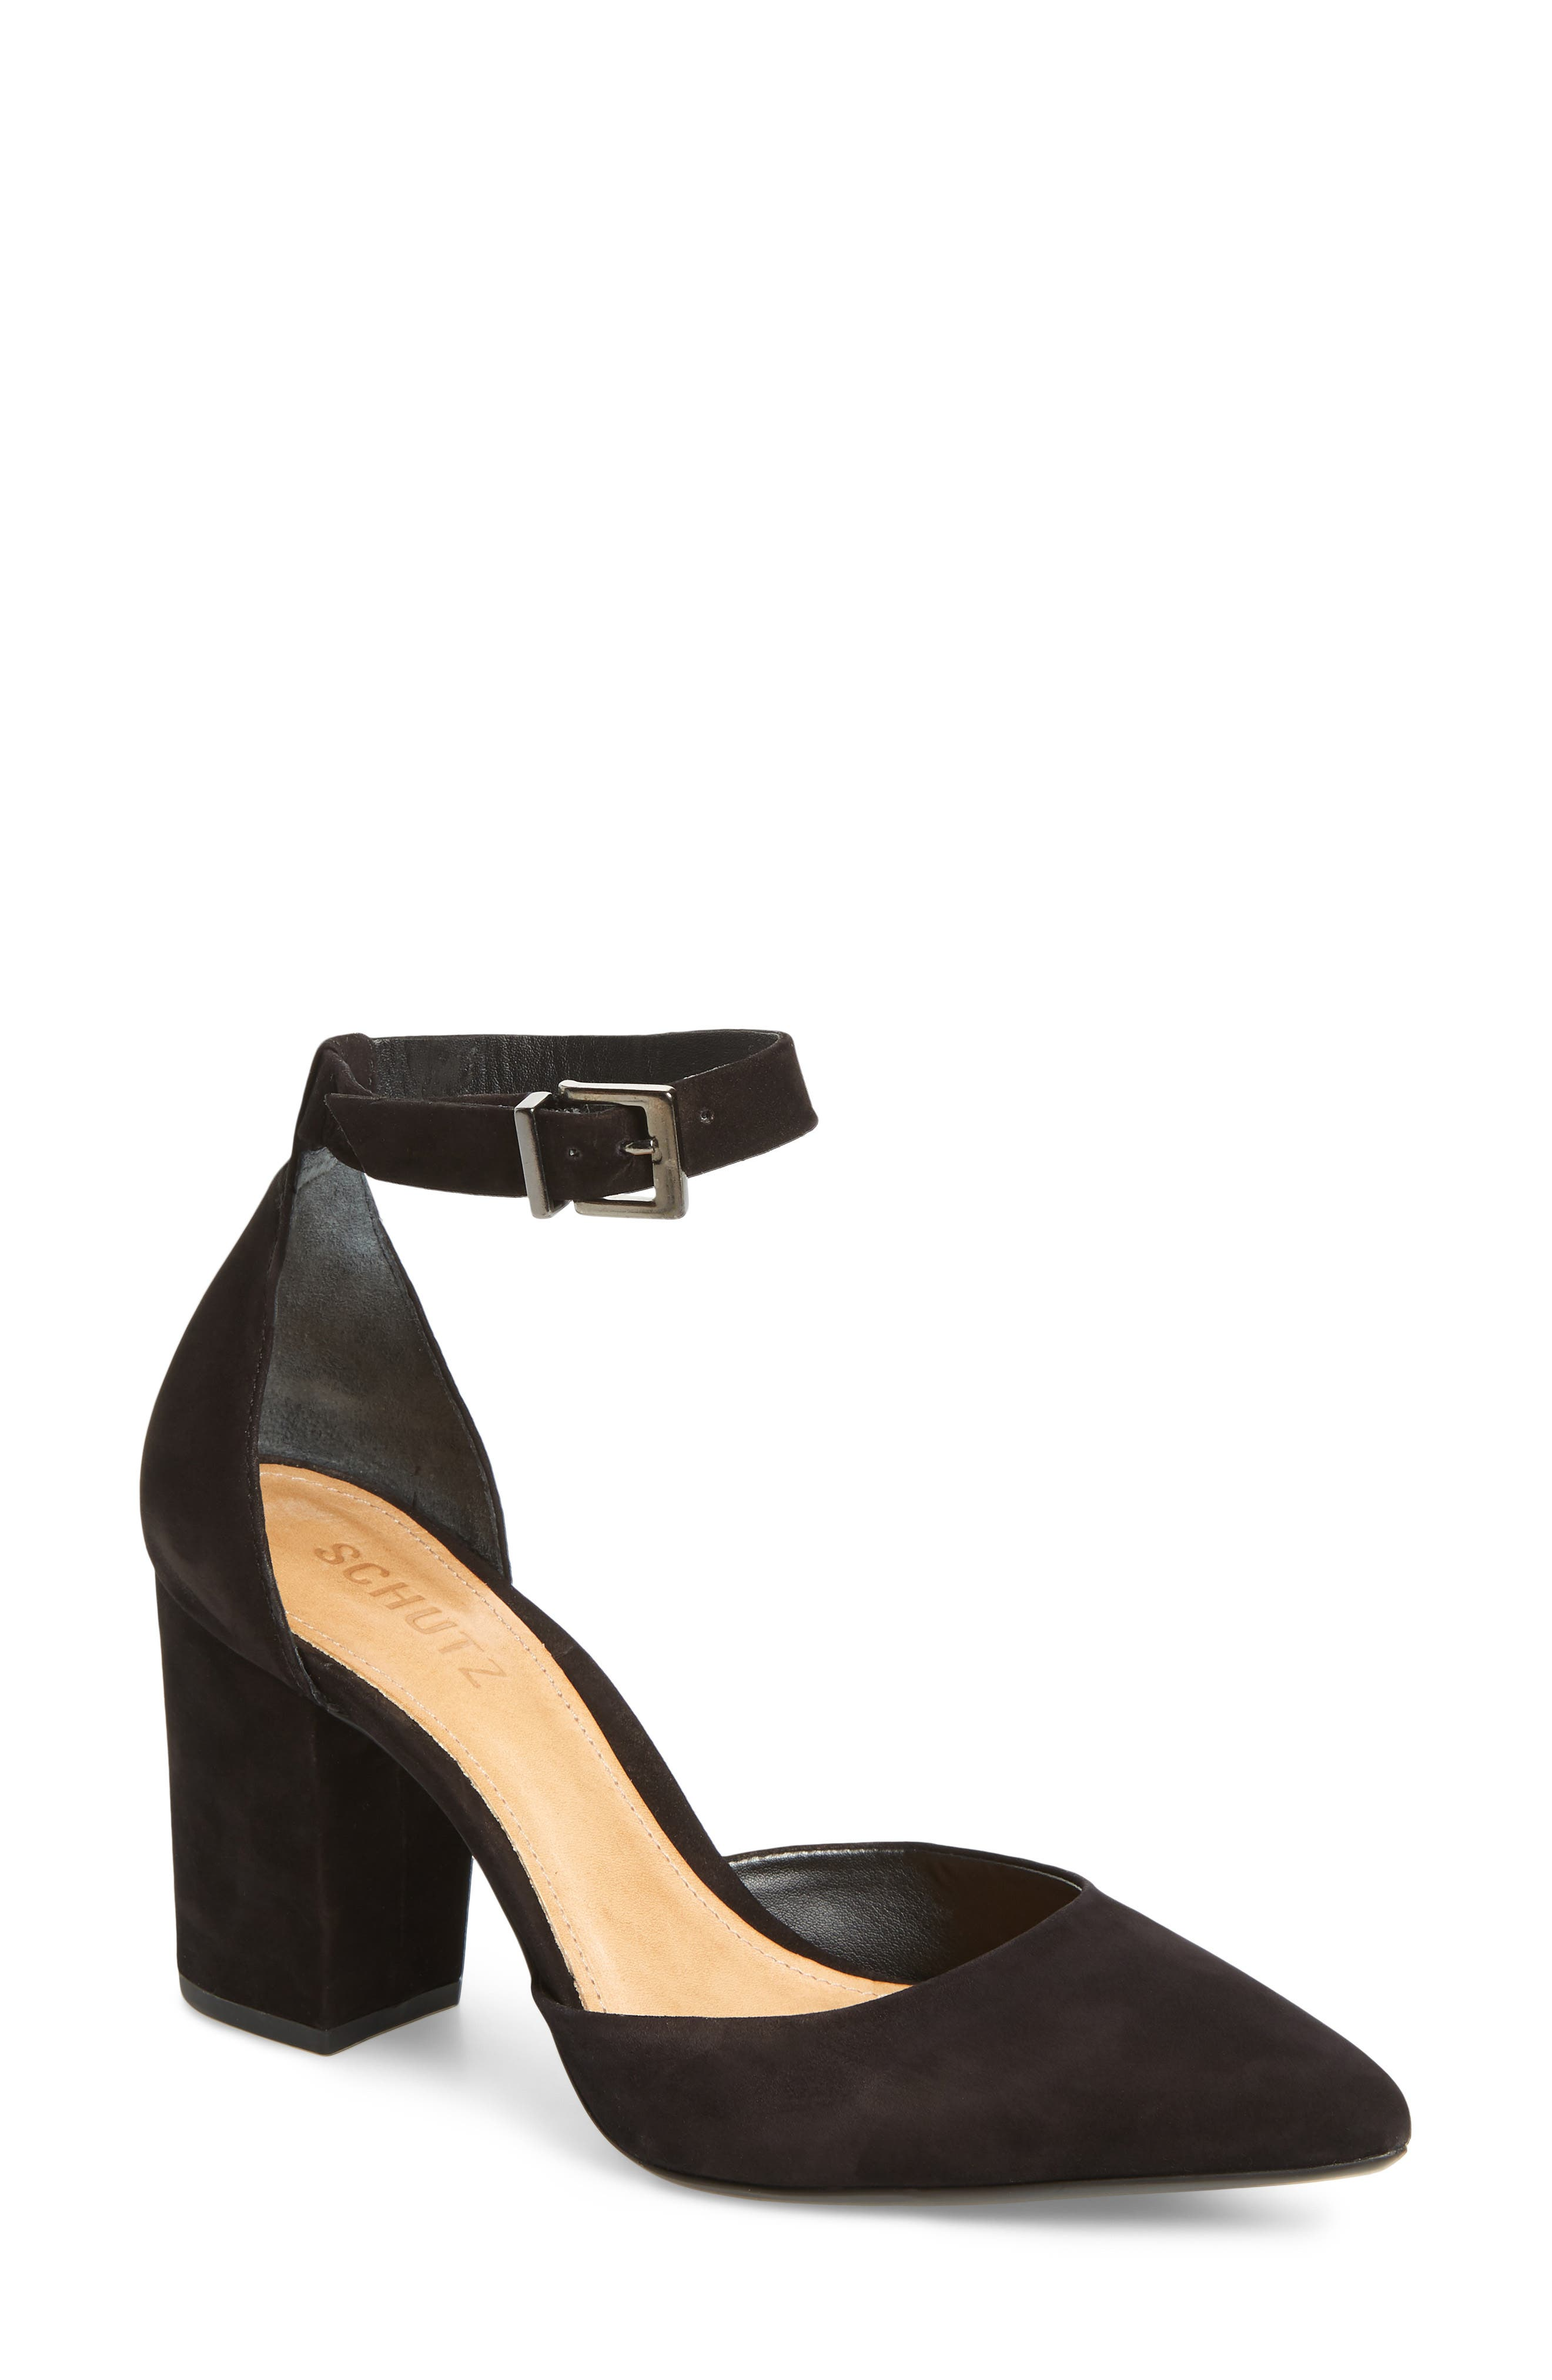 Ionara Ankle Strap Pump,                         Main,                         color, BLACK NUBUCK LEATHER